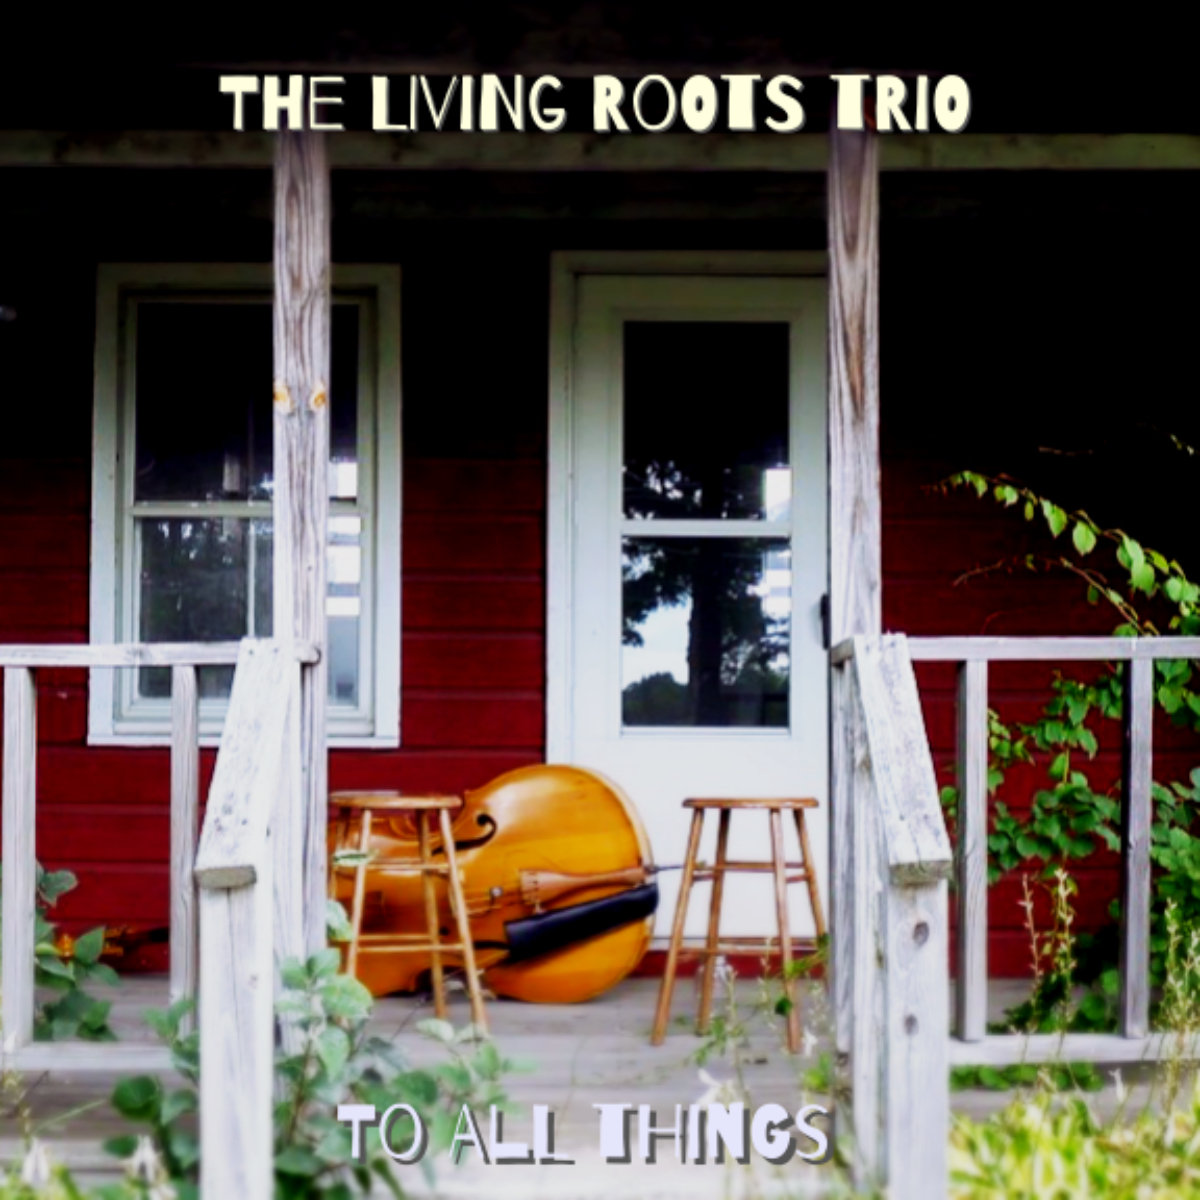 To All Things by The Living Roots Trio